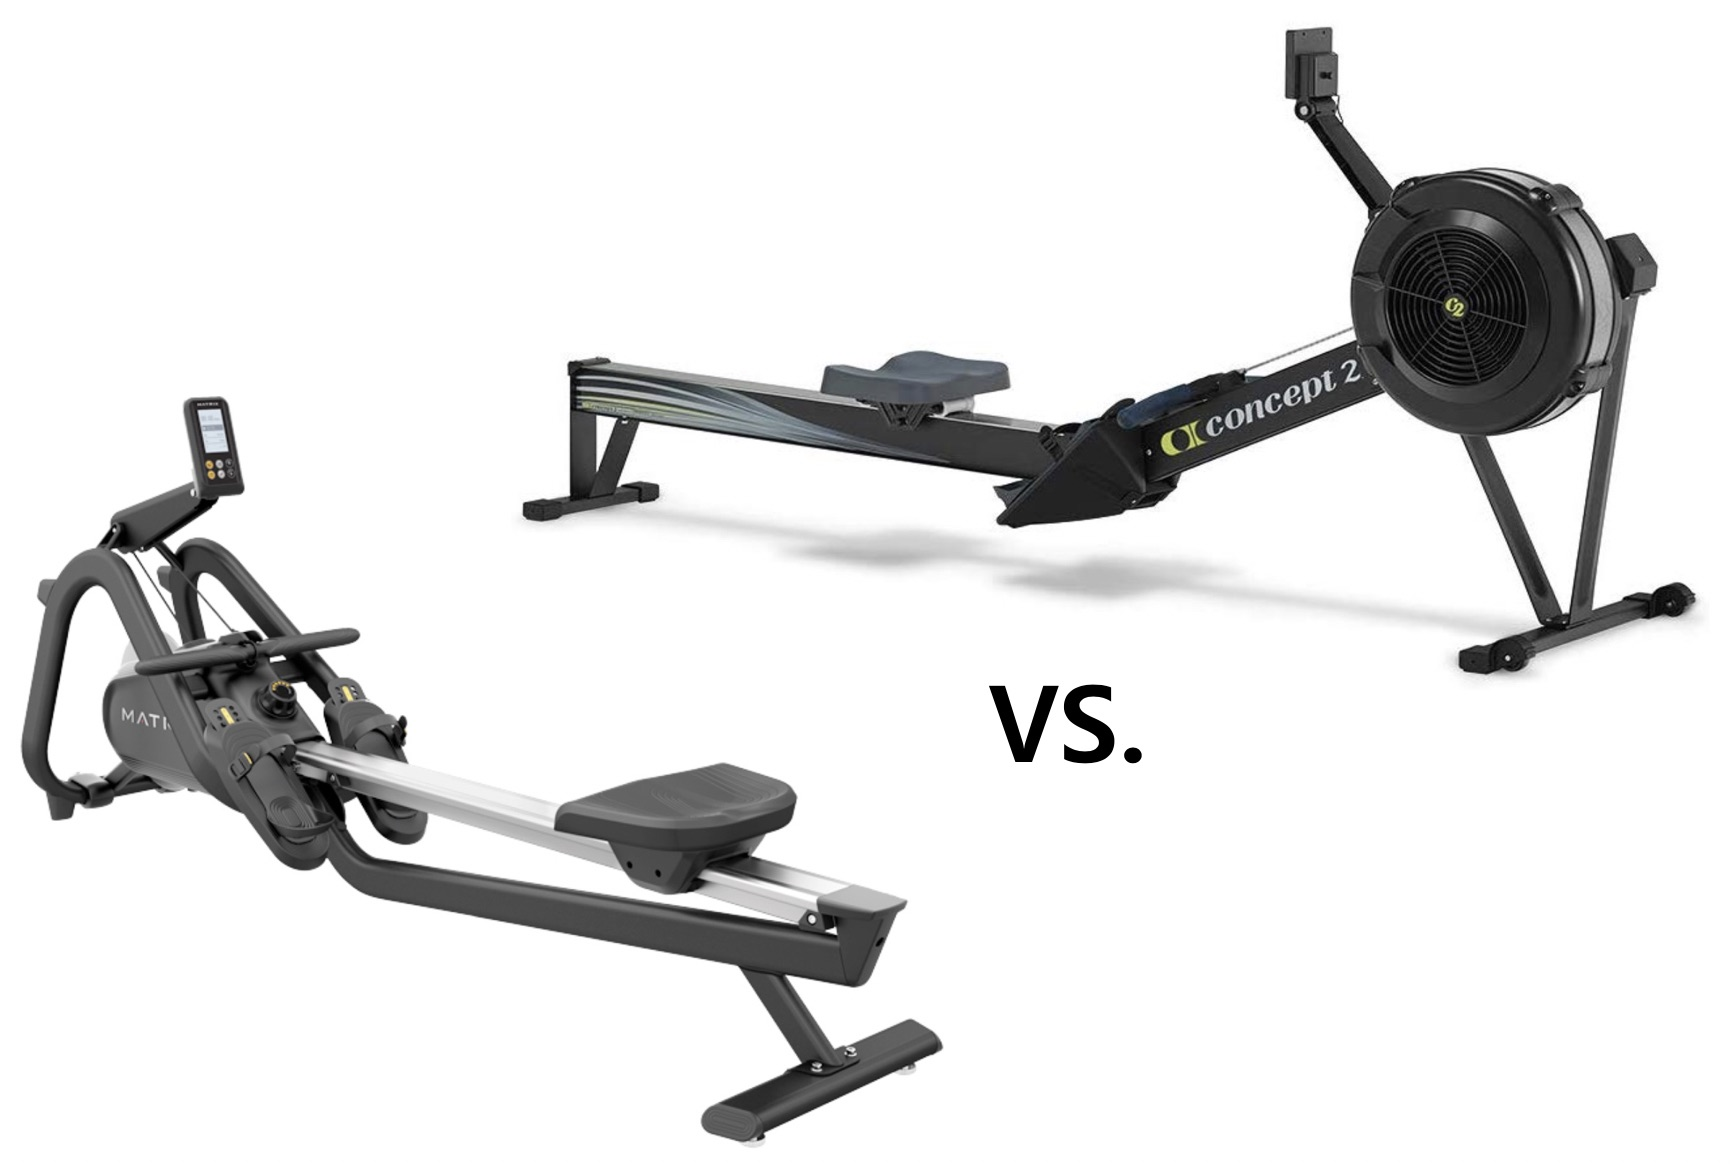 Matrix Rower vs. Concept2